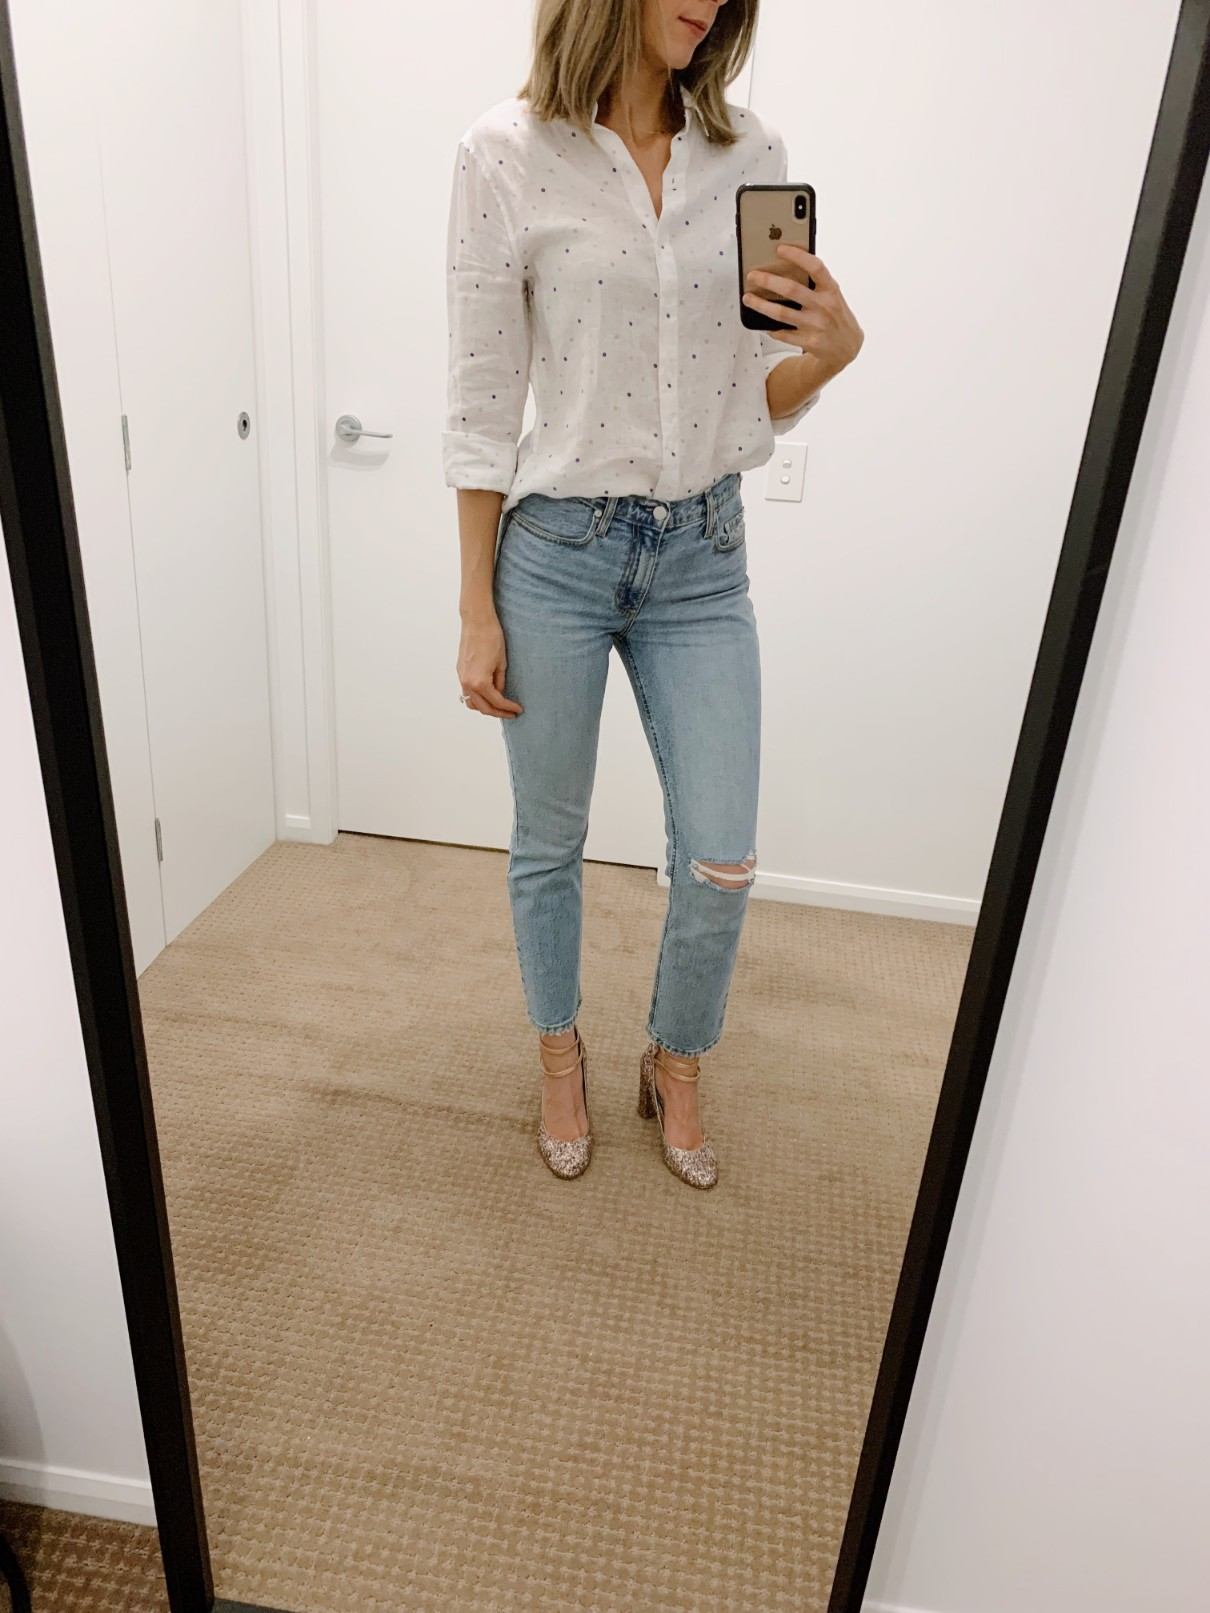 white linen shirt and light denim jeans with kate spade glitter shoes wedding day shoes fashion blogger pinterest outfiit style elixir blog